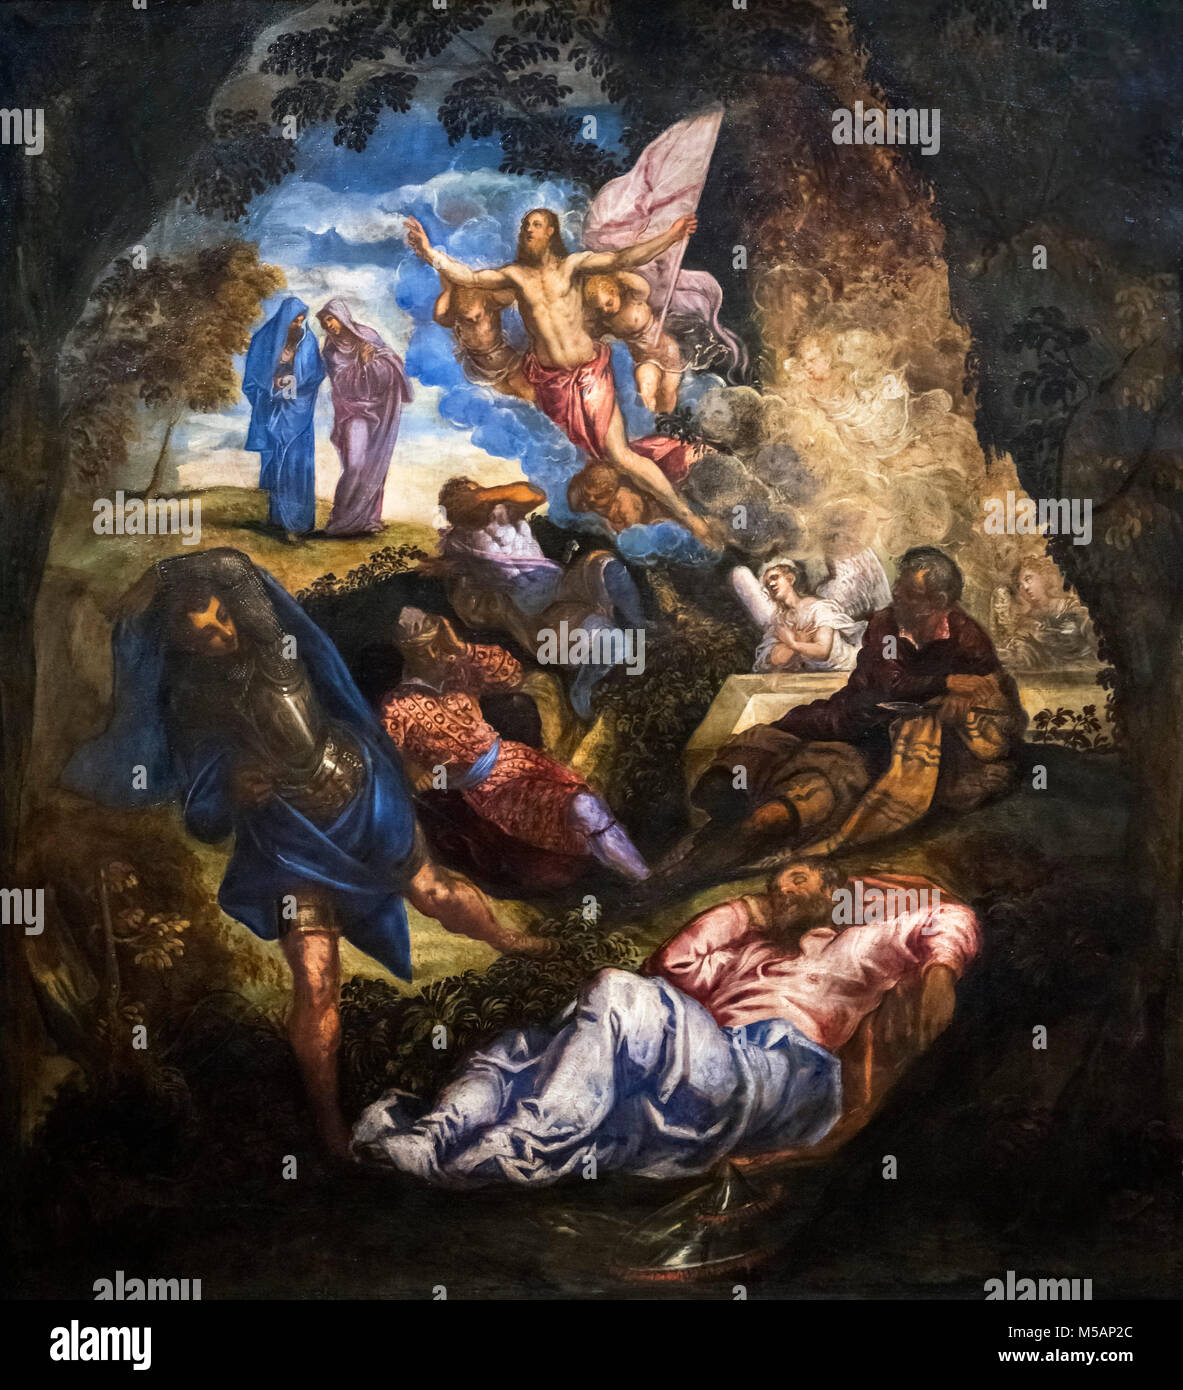 The Resurrection of Christ by Jacopo Tintoretto (c.1518-1594), oil on canvas, c.1570s - Stock Image